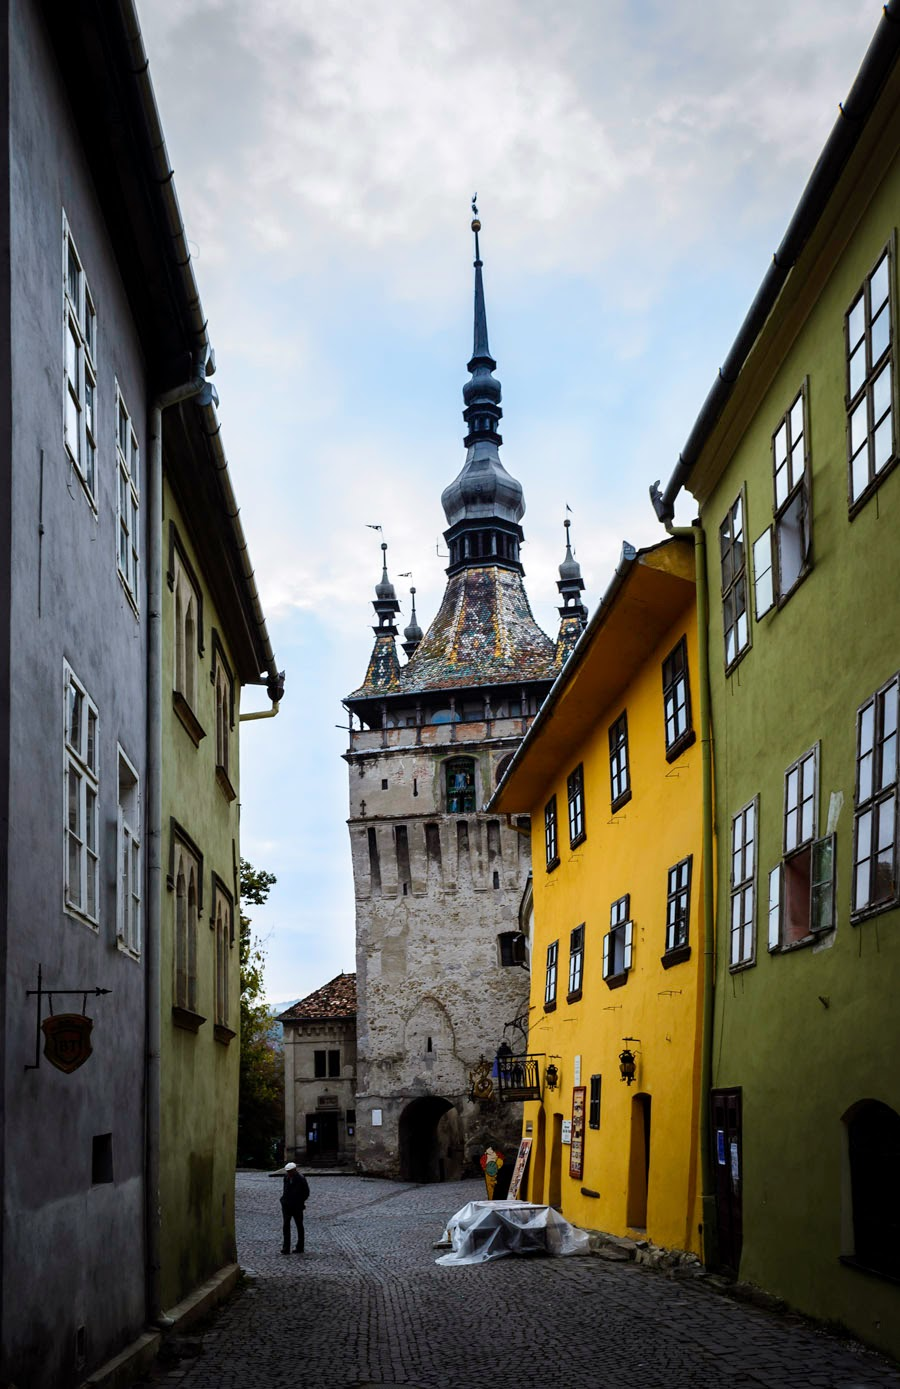 A narrow street in the Sighisoara medieval citadel and the Clock tower in the background on the photo